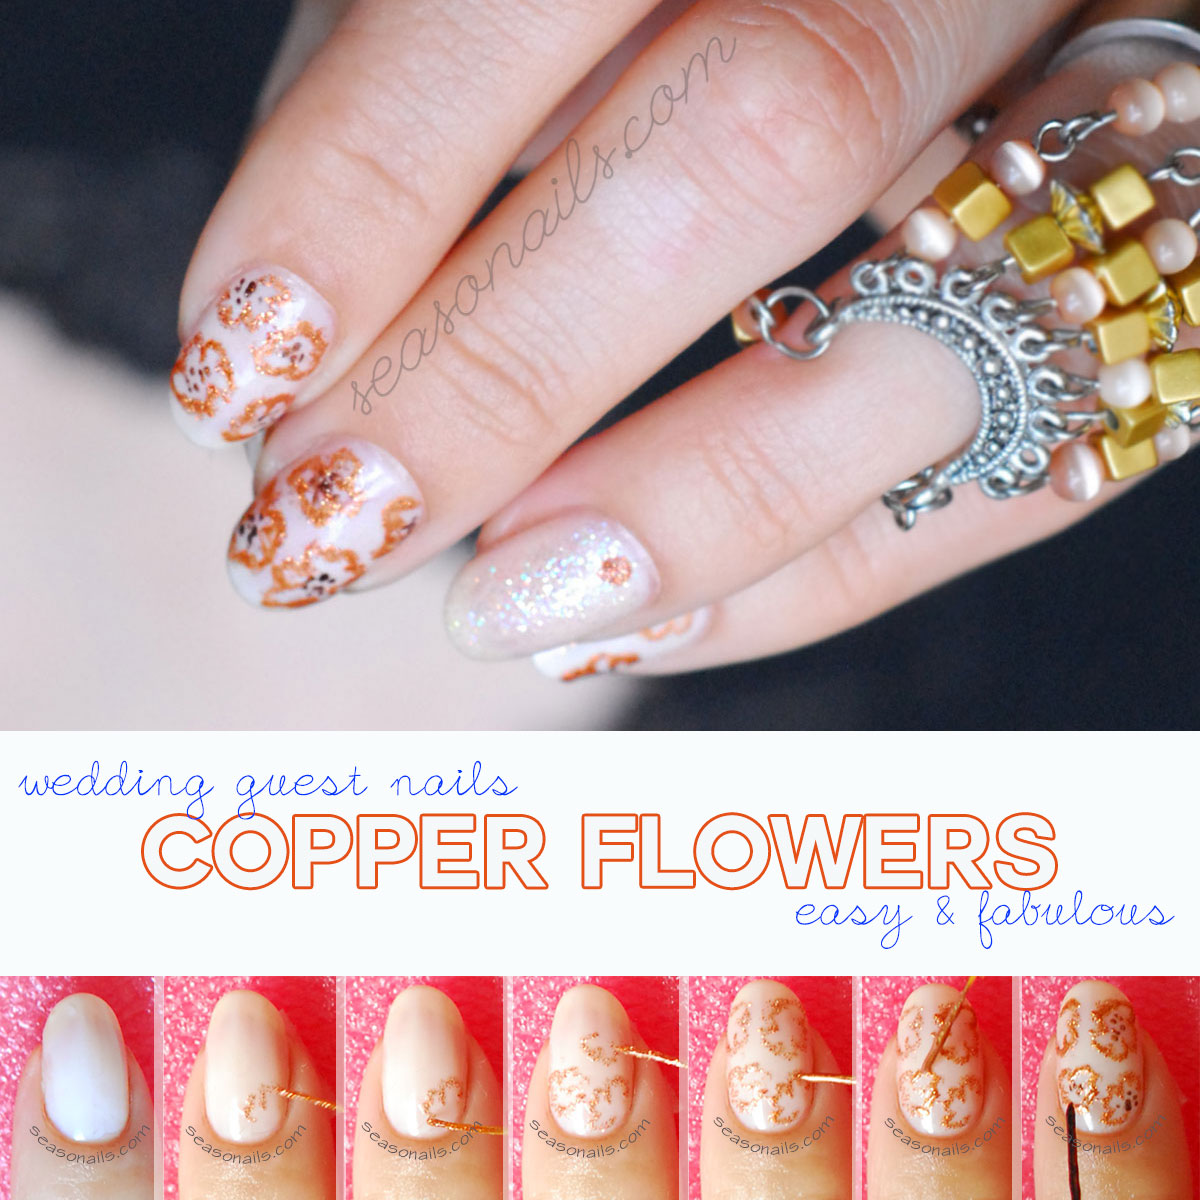 Wedding nails copper flowers mani seasonails how to copper flowers nail art wedding guest mani tutorial prinsesfo Choice Image